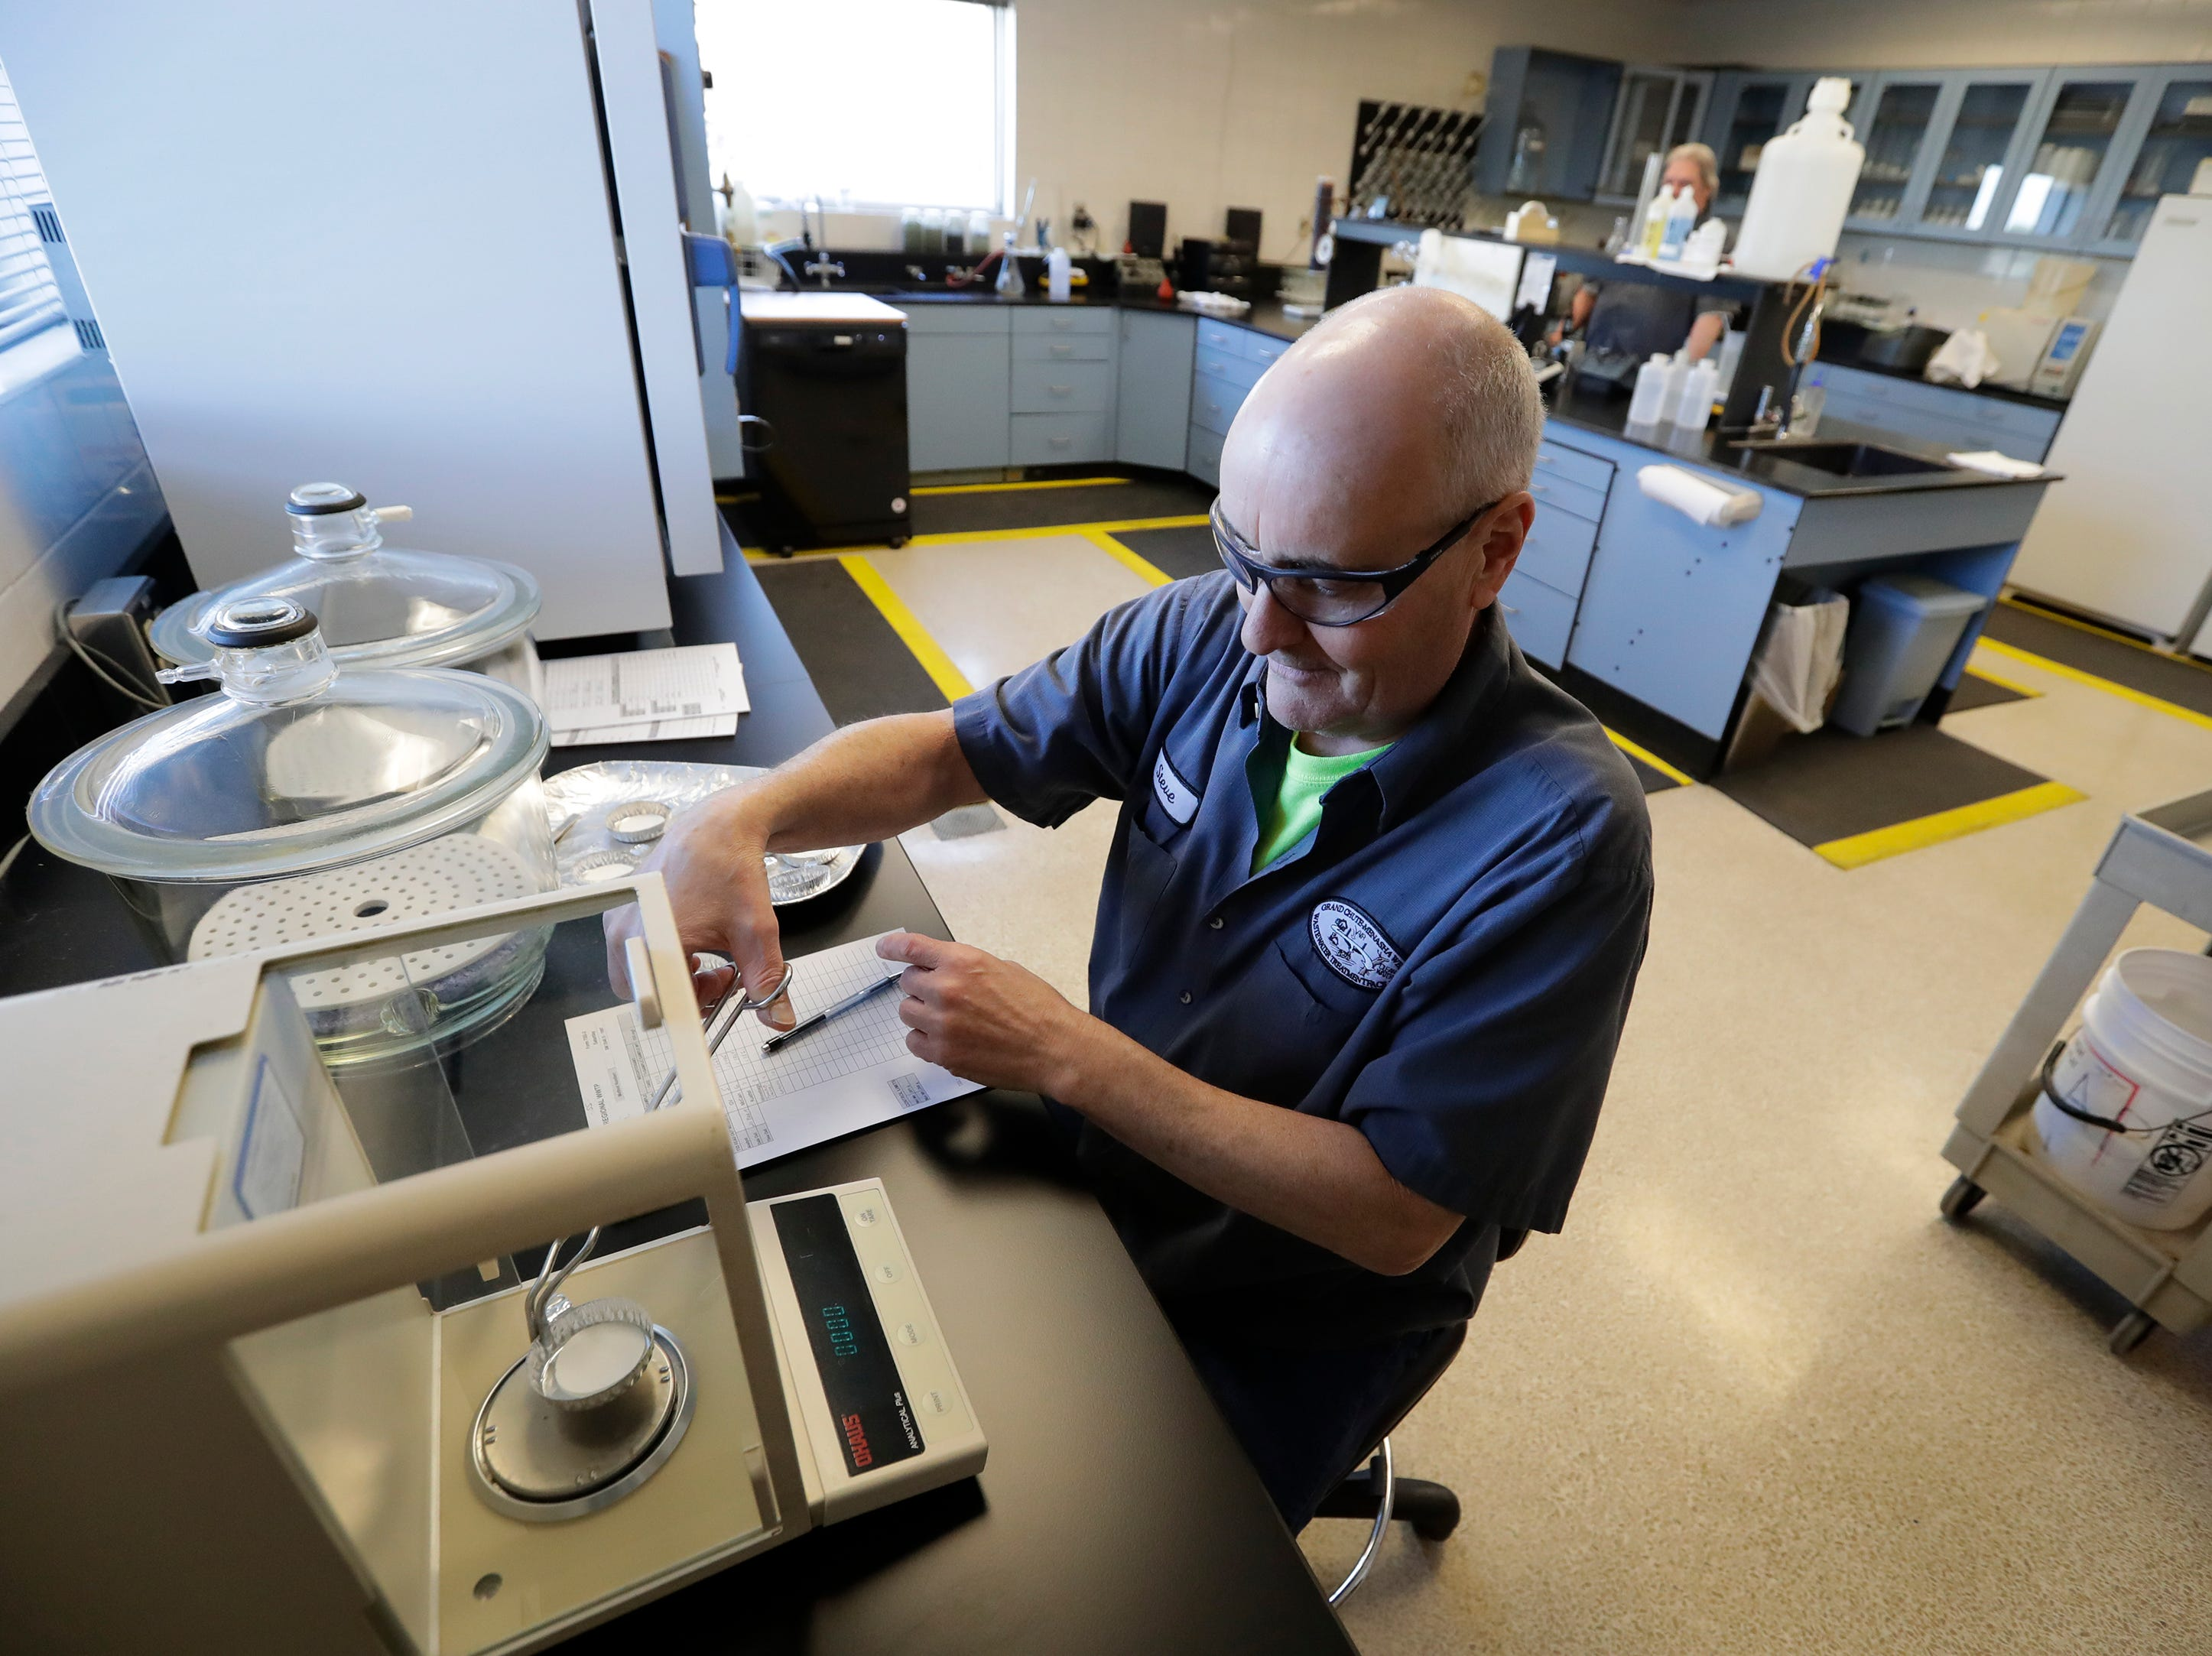 Lab director Steven Vickstrom evaluates solids concentrations for compliance purposes at th Fox West Regional Wastweater Treatment Plant located at 1965 W. Butte des Morts Beach Road Tuesday, March 19, 2019, in Fox Crossing, Wis. Dan Powers/USA TODAY NETWORK-Wisconsin